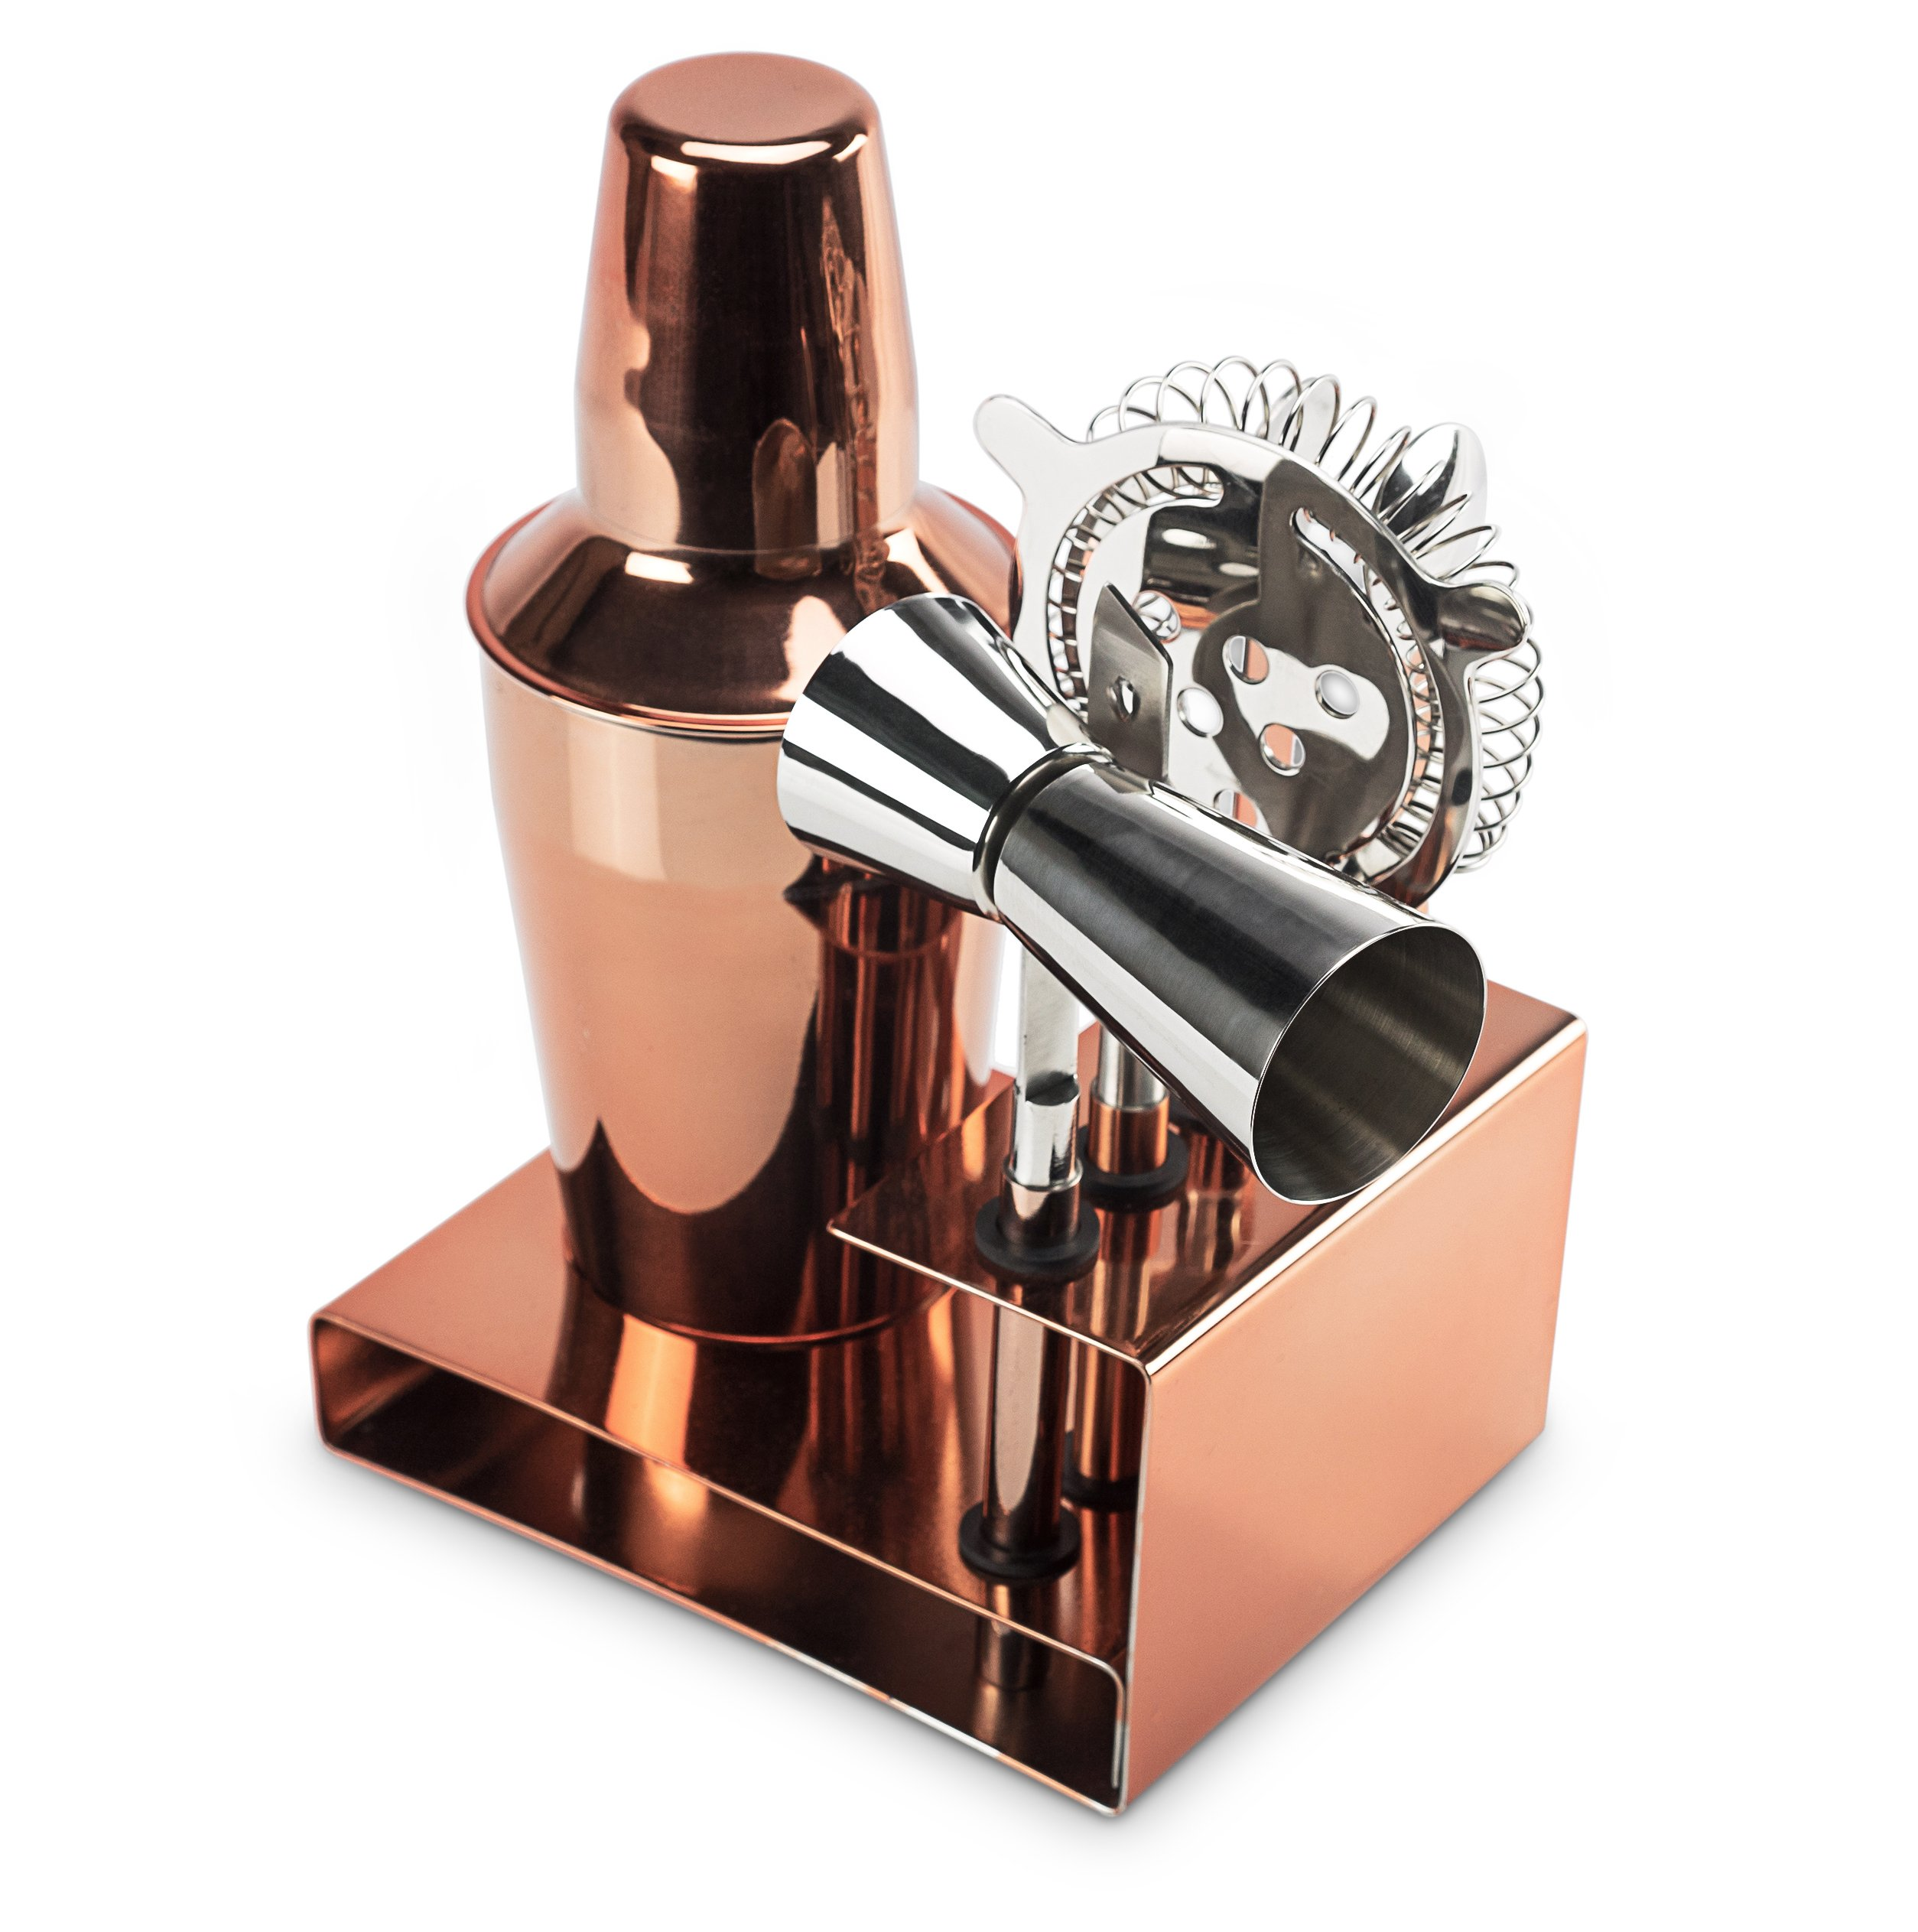 Miko Premium Cocktail Bar Set, High Grade Stainless Steel 6 Piece Set, Made In India (Rose Gold) by Miko (Image #3)